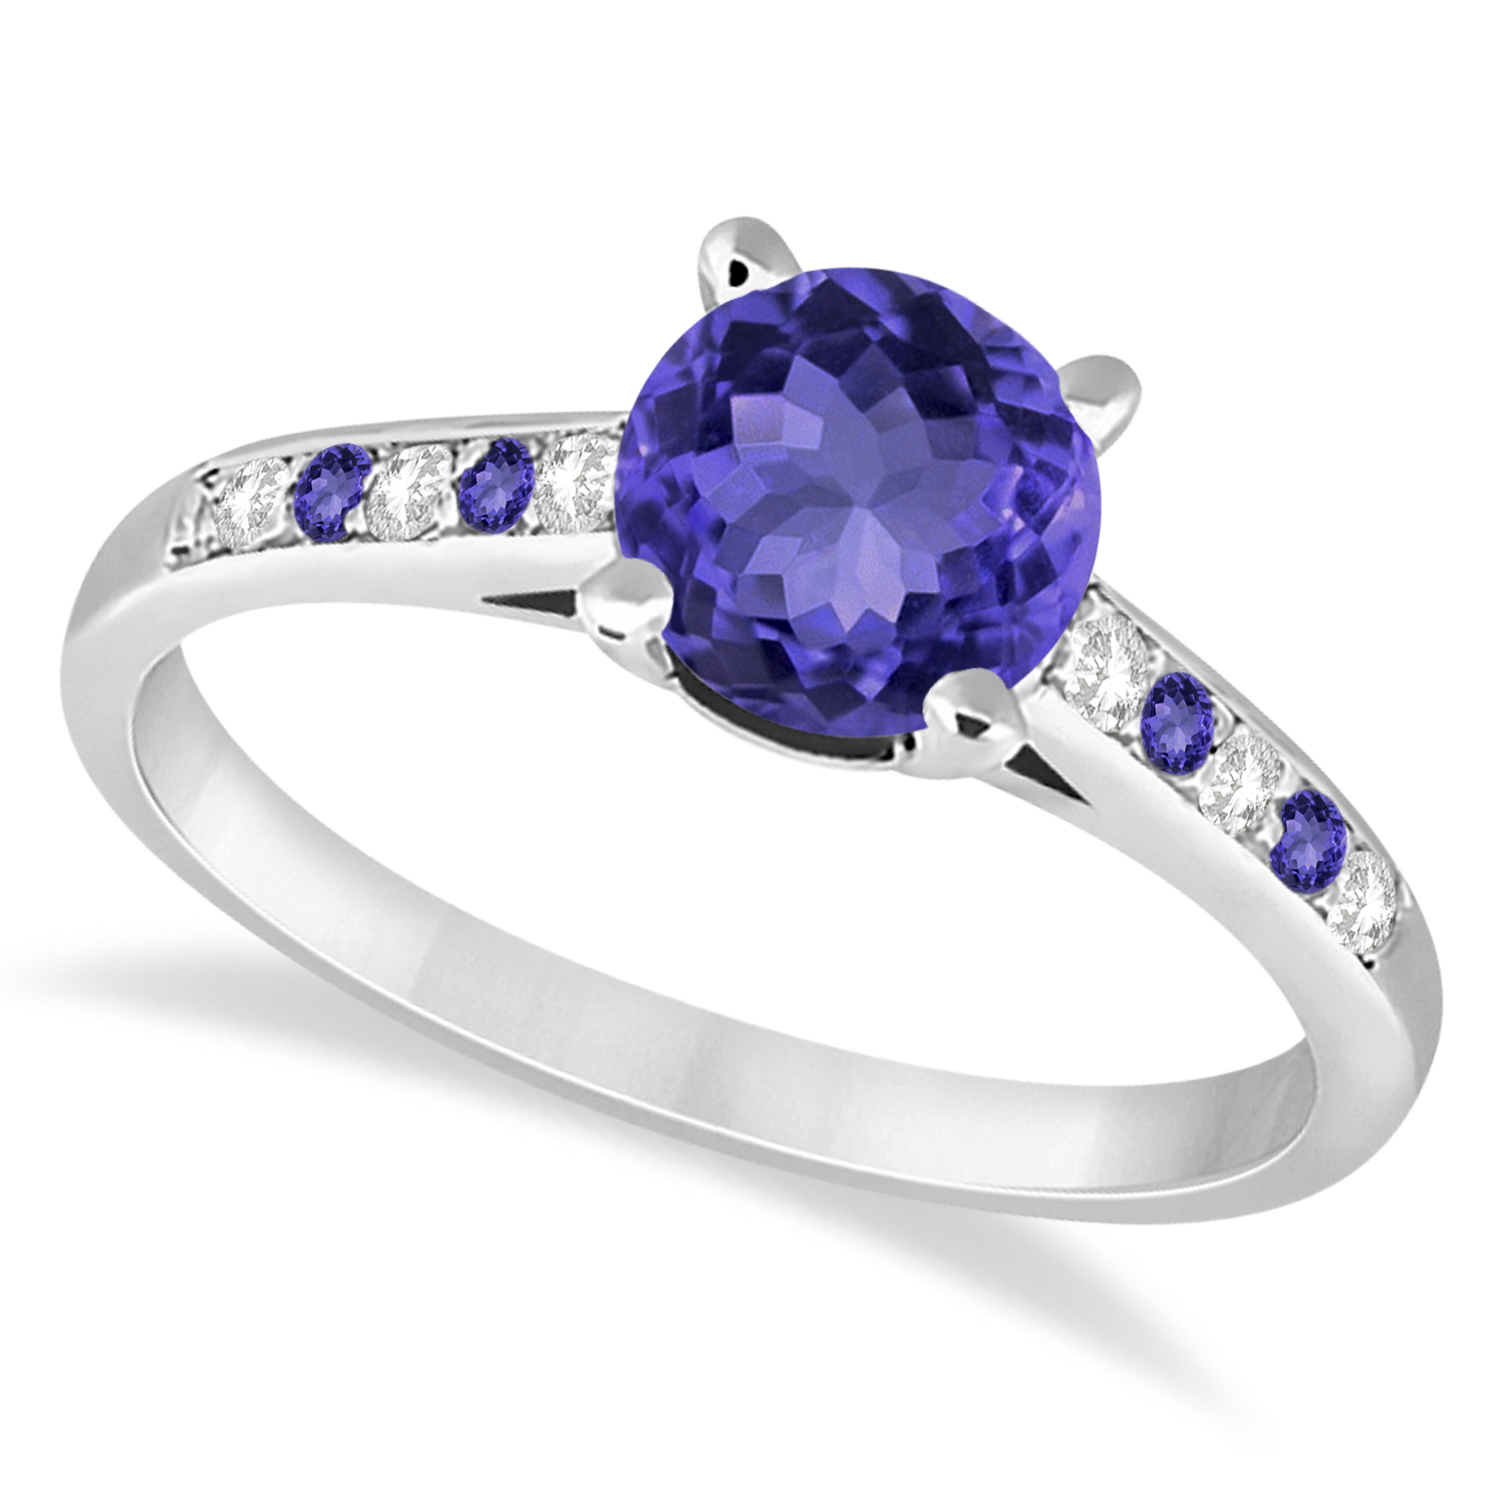 cathedral tanzanite diamond engagement ring 14k white. Black Bedroom Furniture Sets. Home Design Ideas